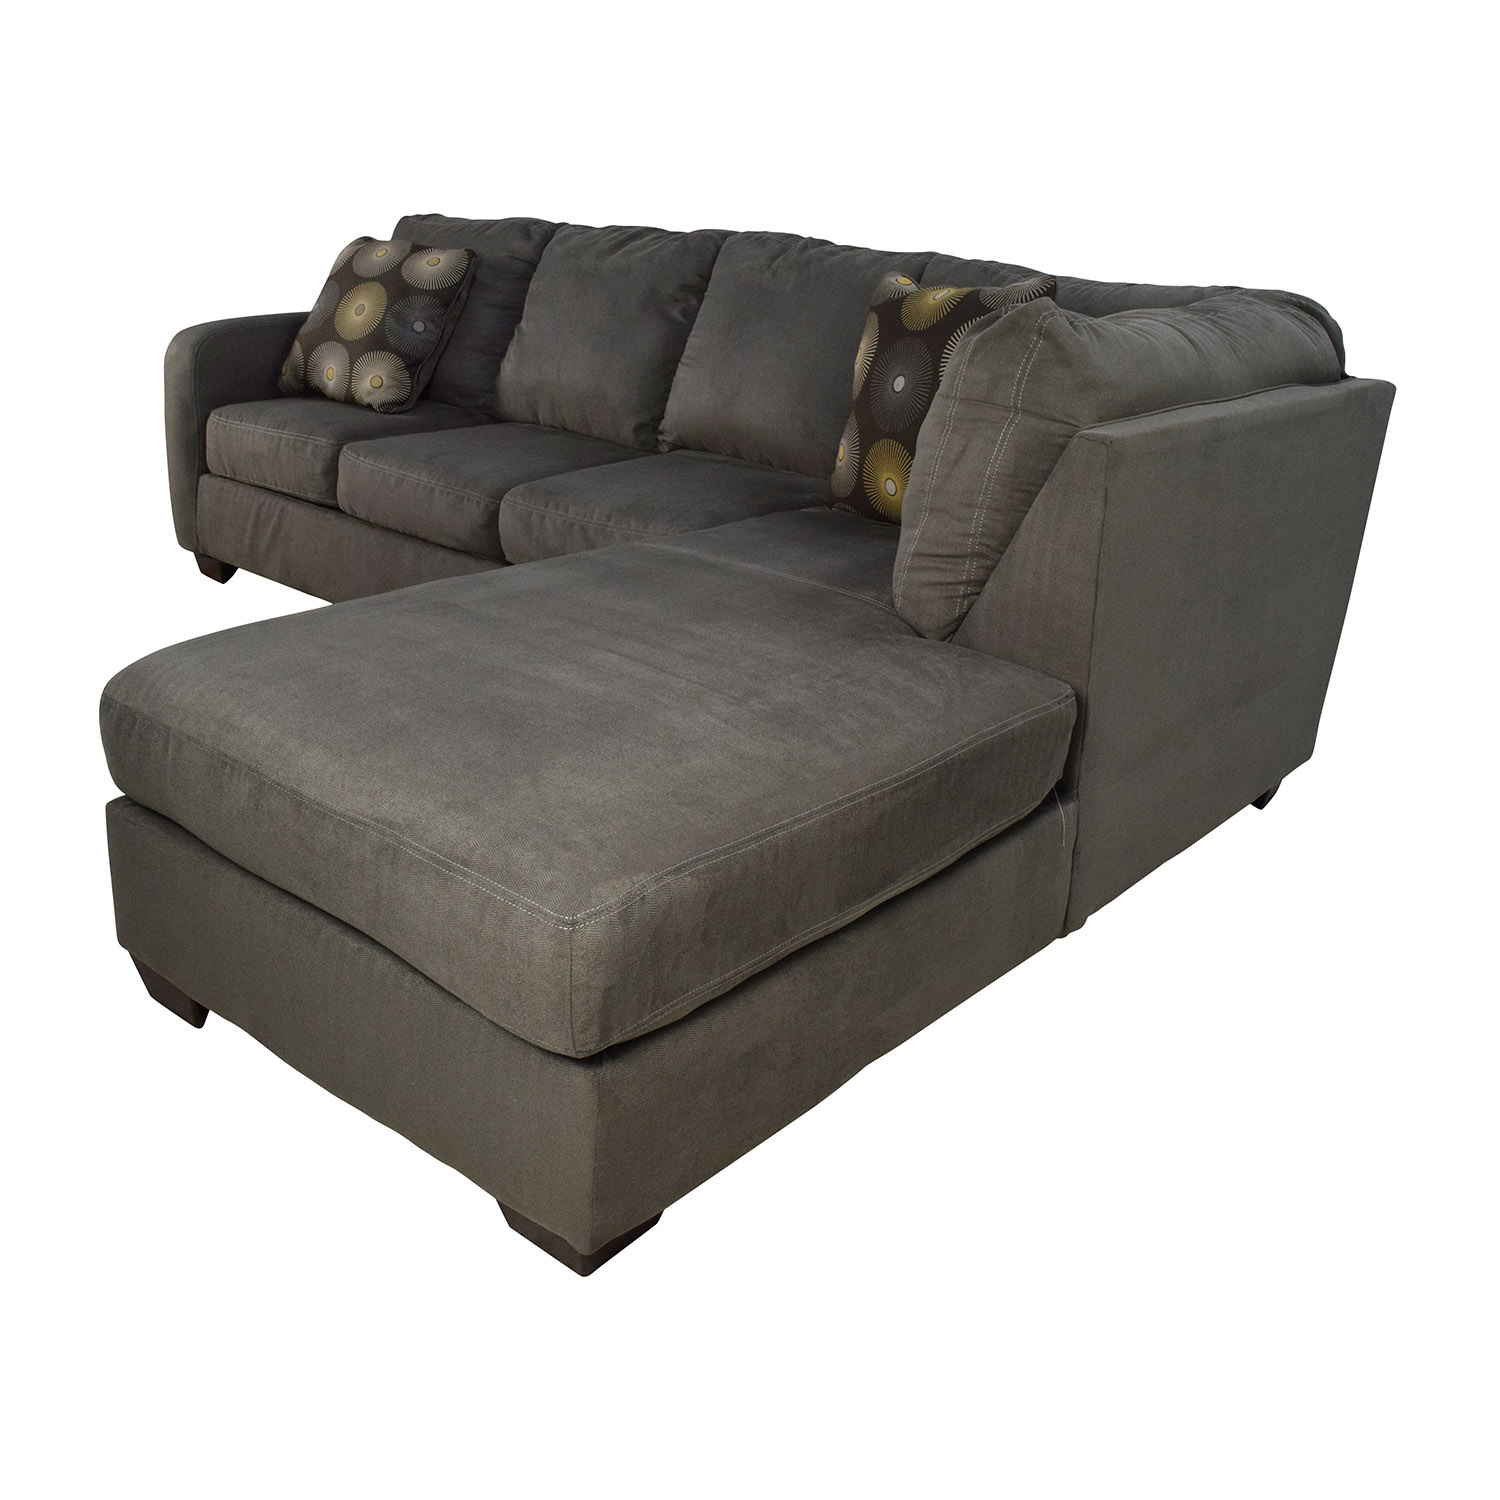 ... Ashley Furniture Ashley Furniture Waverly Gray Sectional Sofa Gray ...